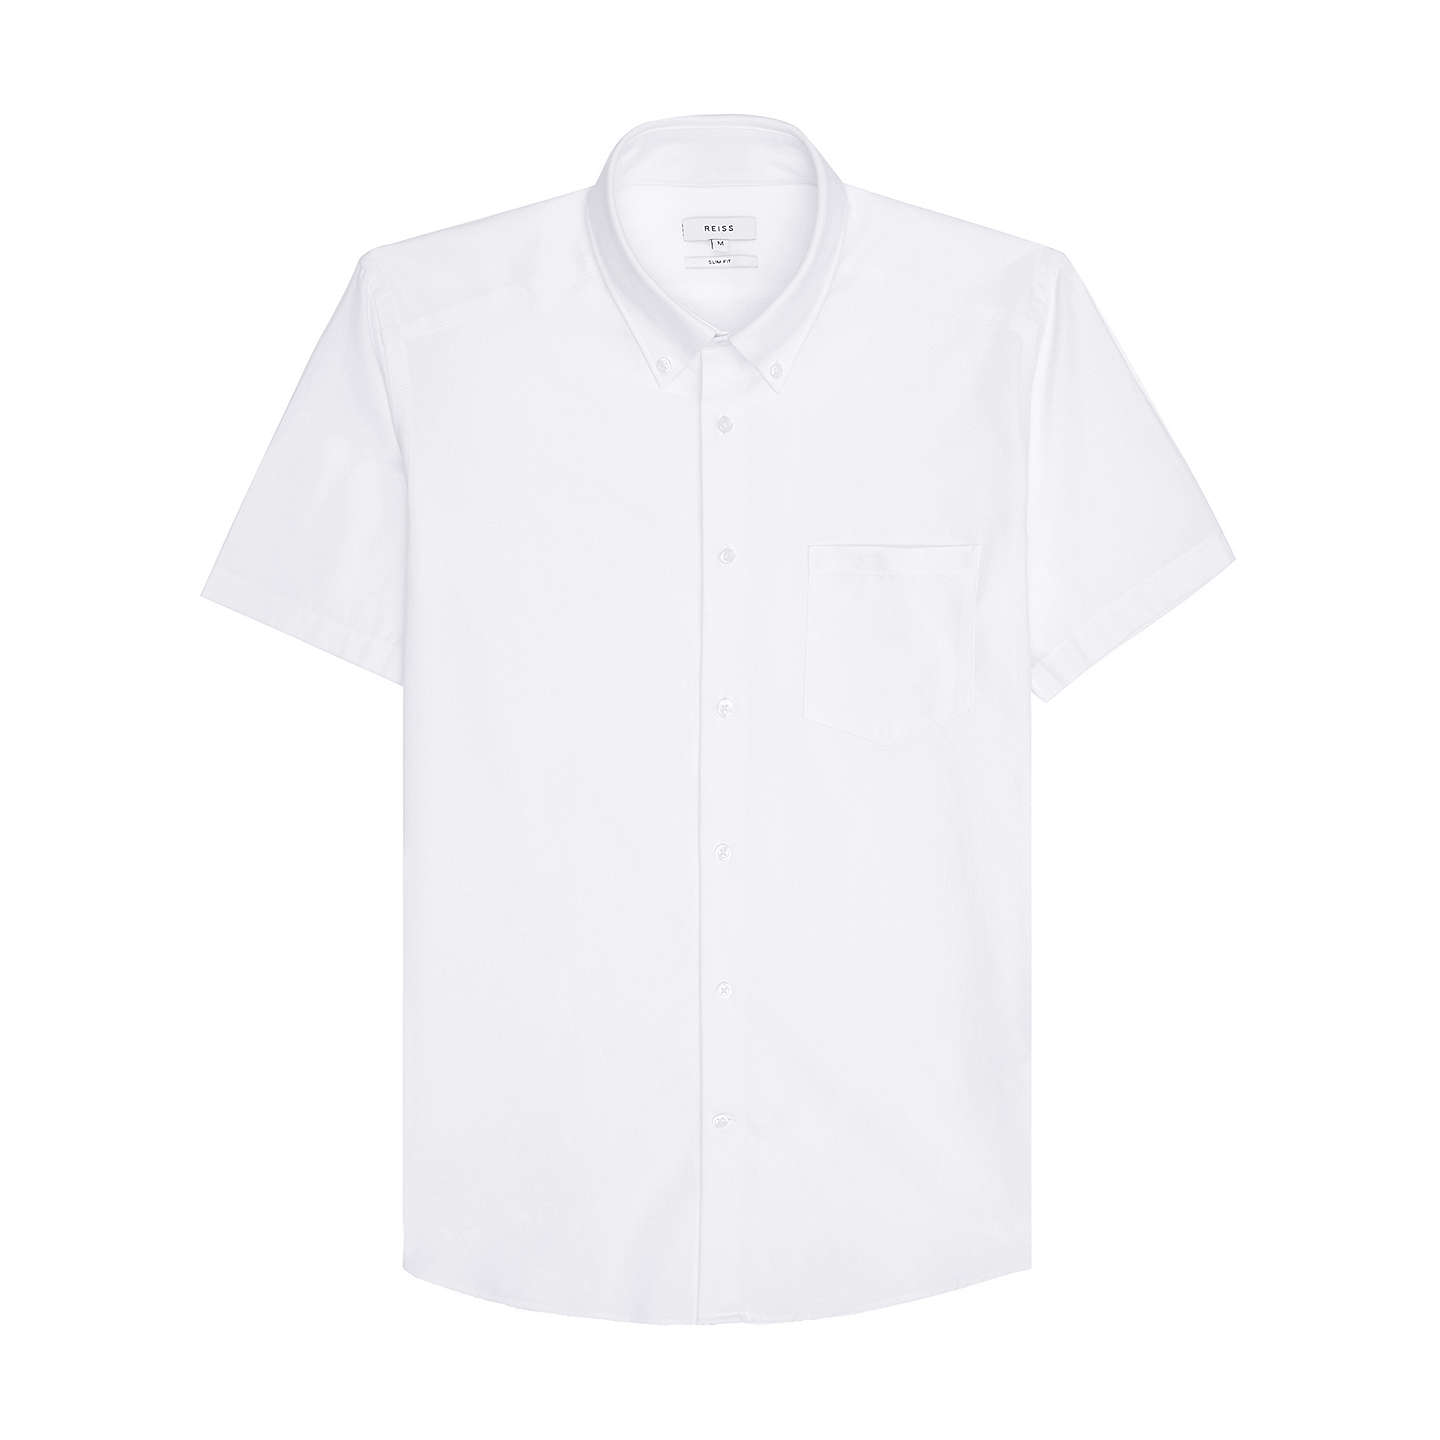 BuyReiss Dunning Short Sleeve Oxford Shirt, White, S Online at johnlewis.com